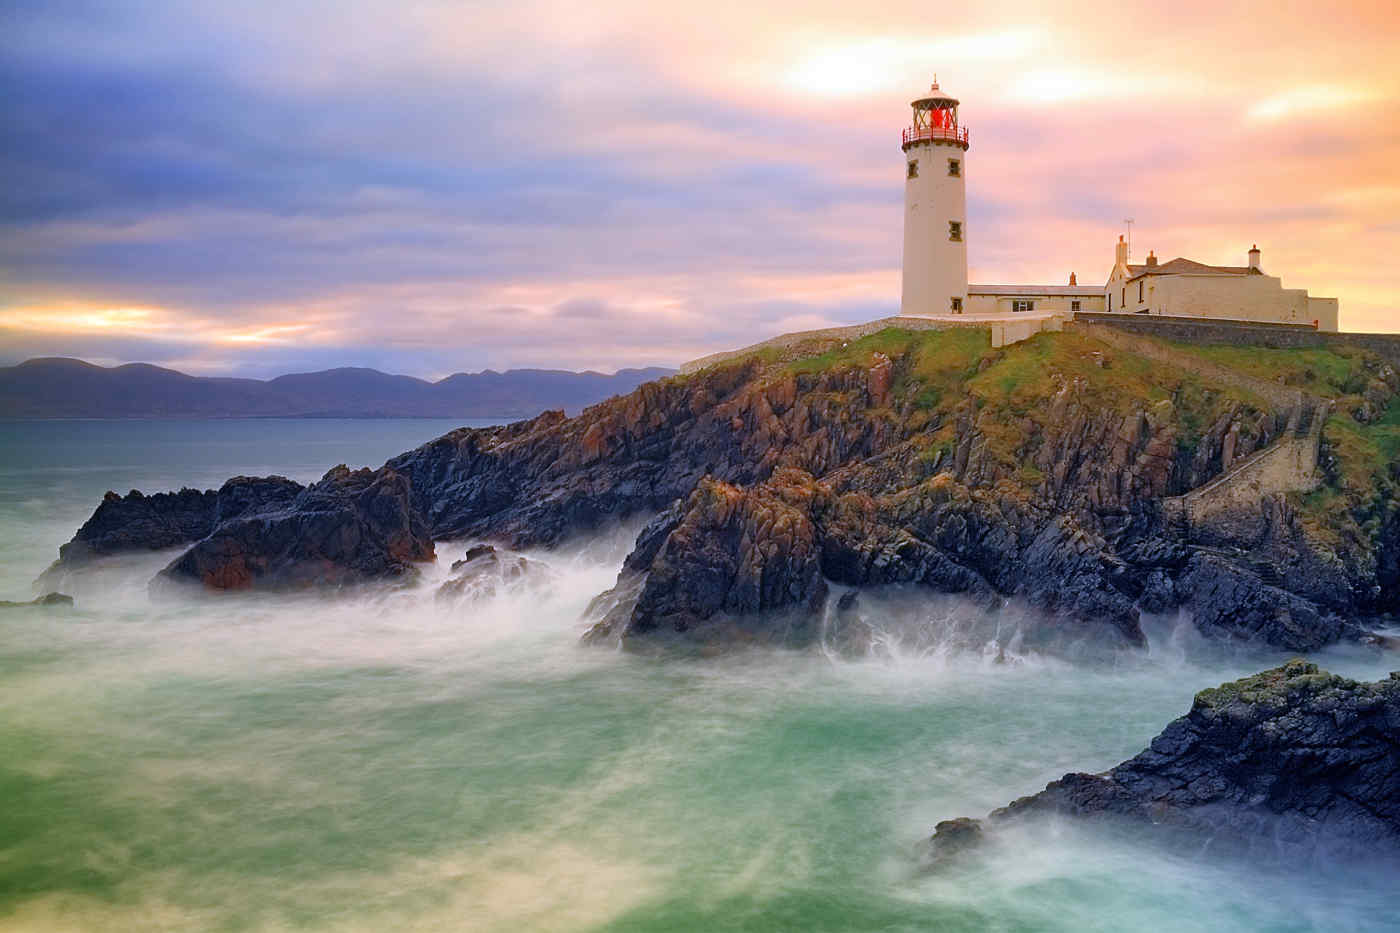 Fanad Lighthouse in Donegal, Ireland